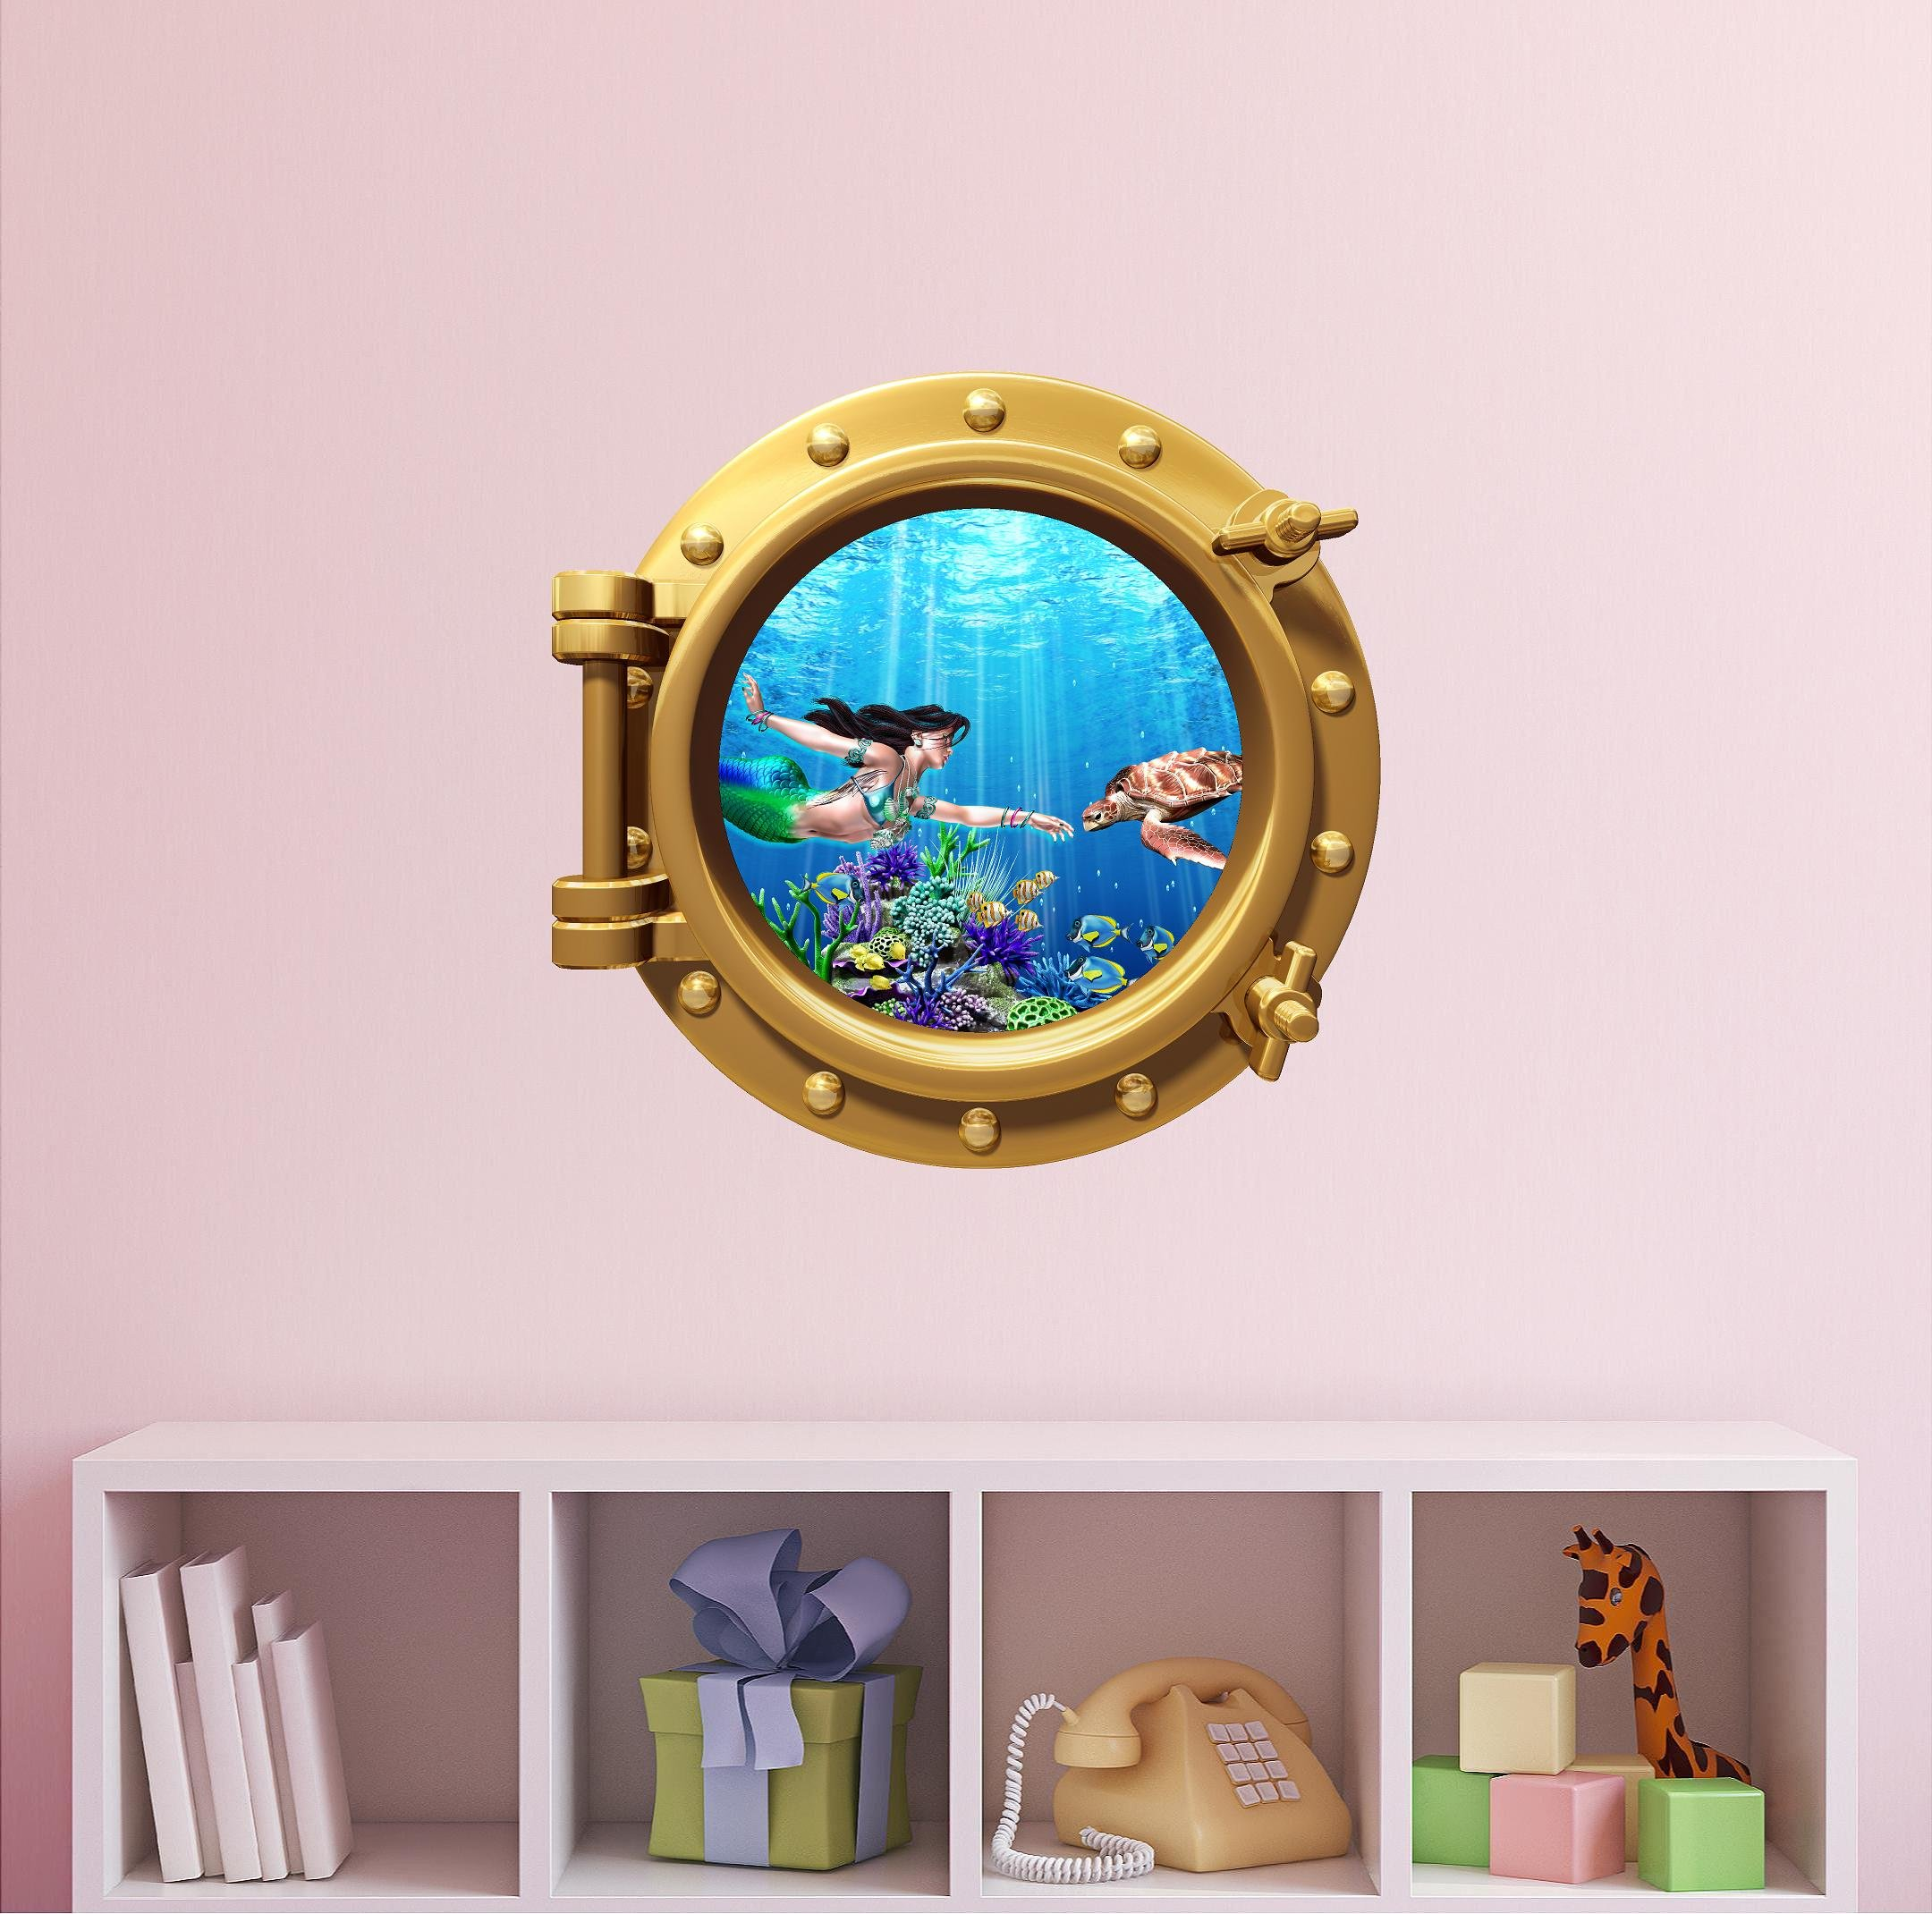 Mermaid Nursery Wall Decal - Ocean Wall Decals - Sea Animal Decals - Mermaid Decals - Mermaid Wall Decals - Porthole Faux Window Mermaid & Sea Turtle #1 BRONZE 24''